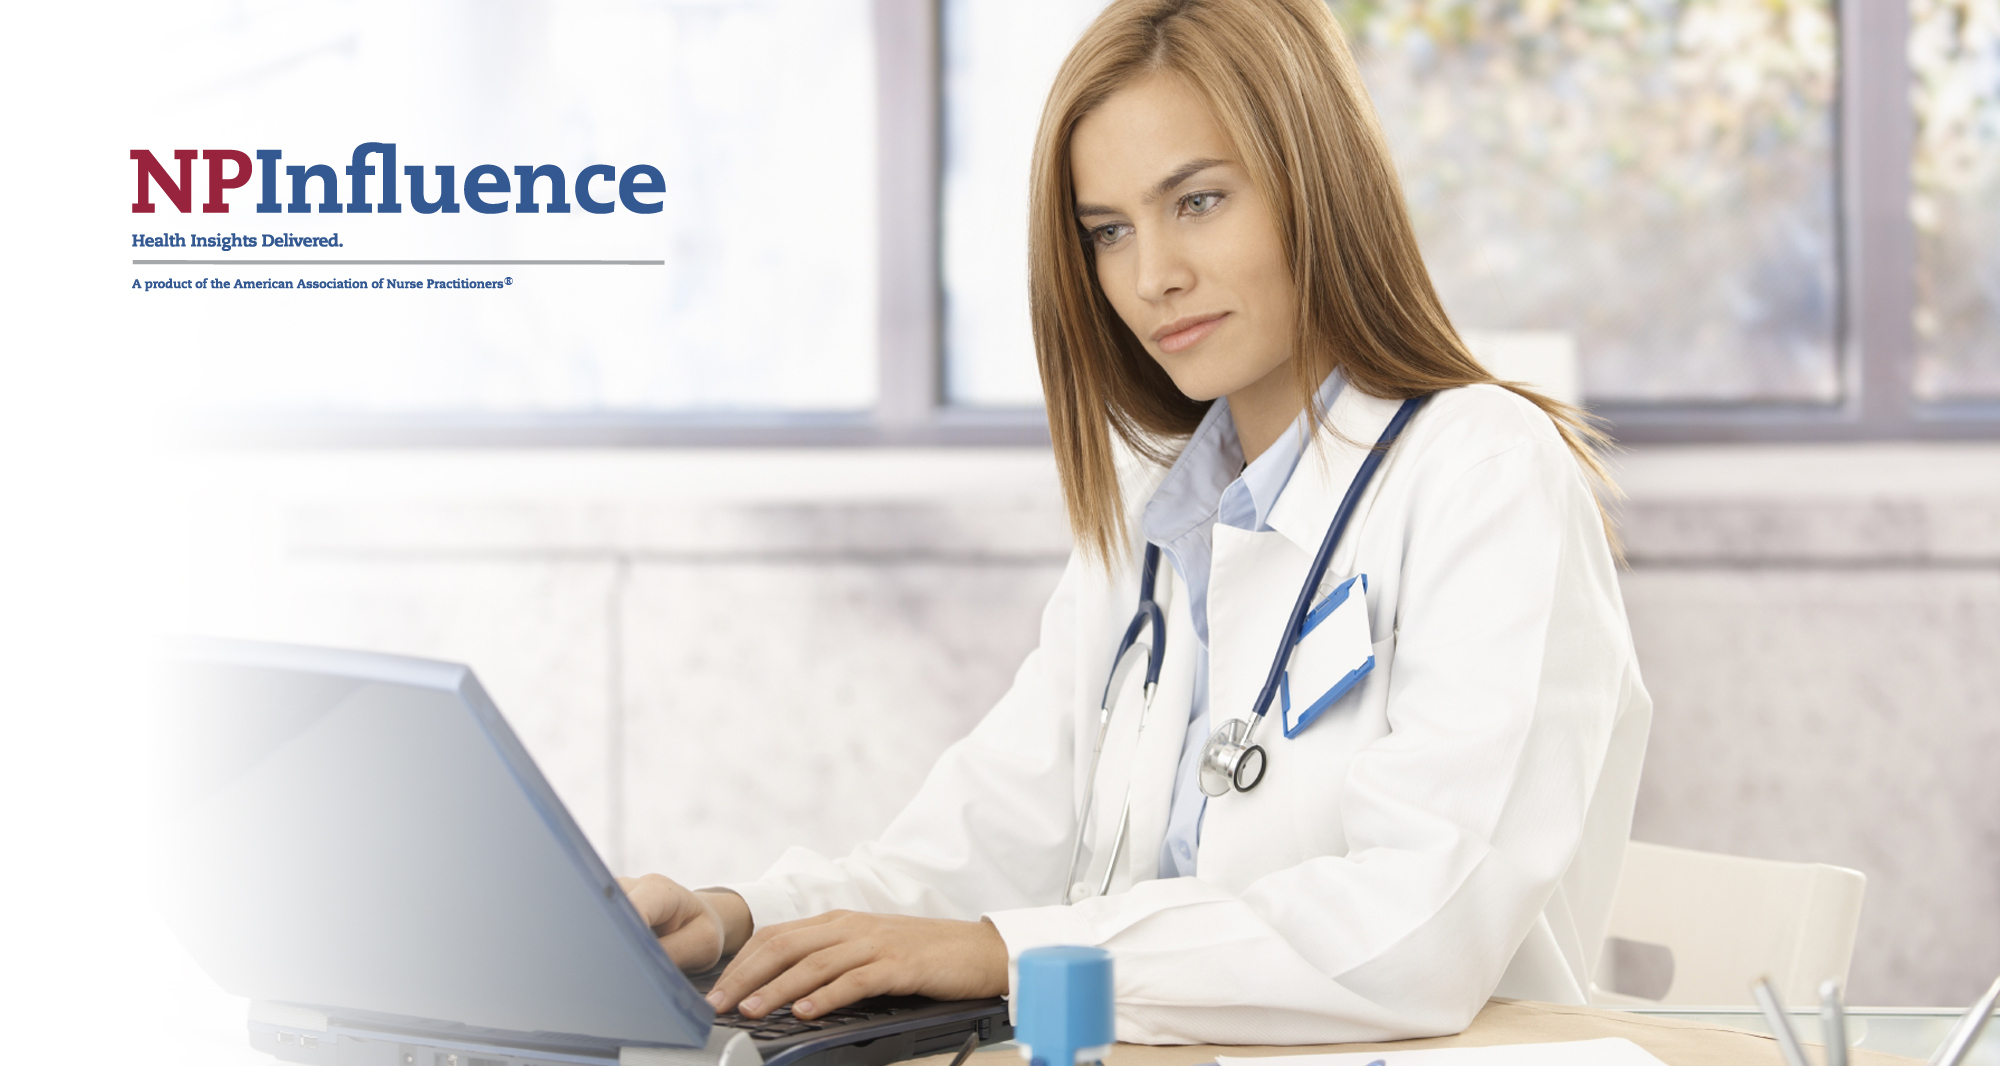 American Association of Nurse Practitioners - NPInfluence